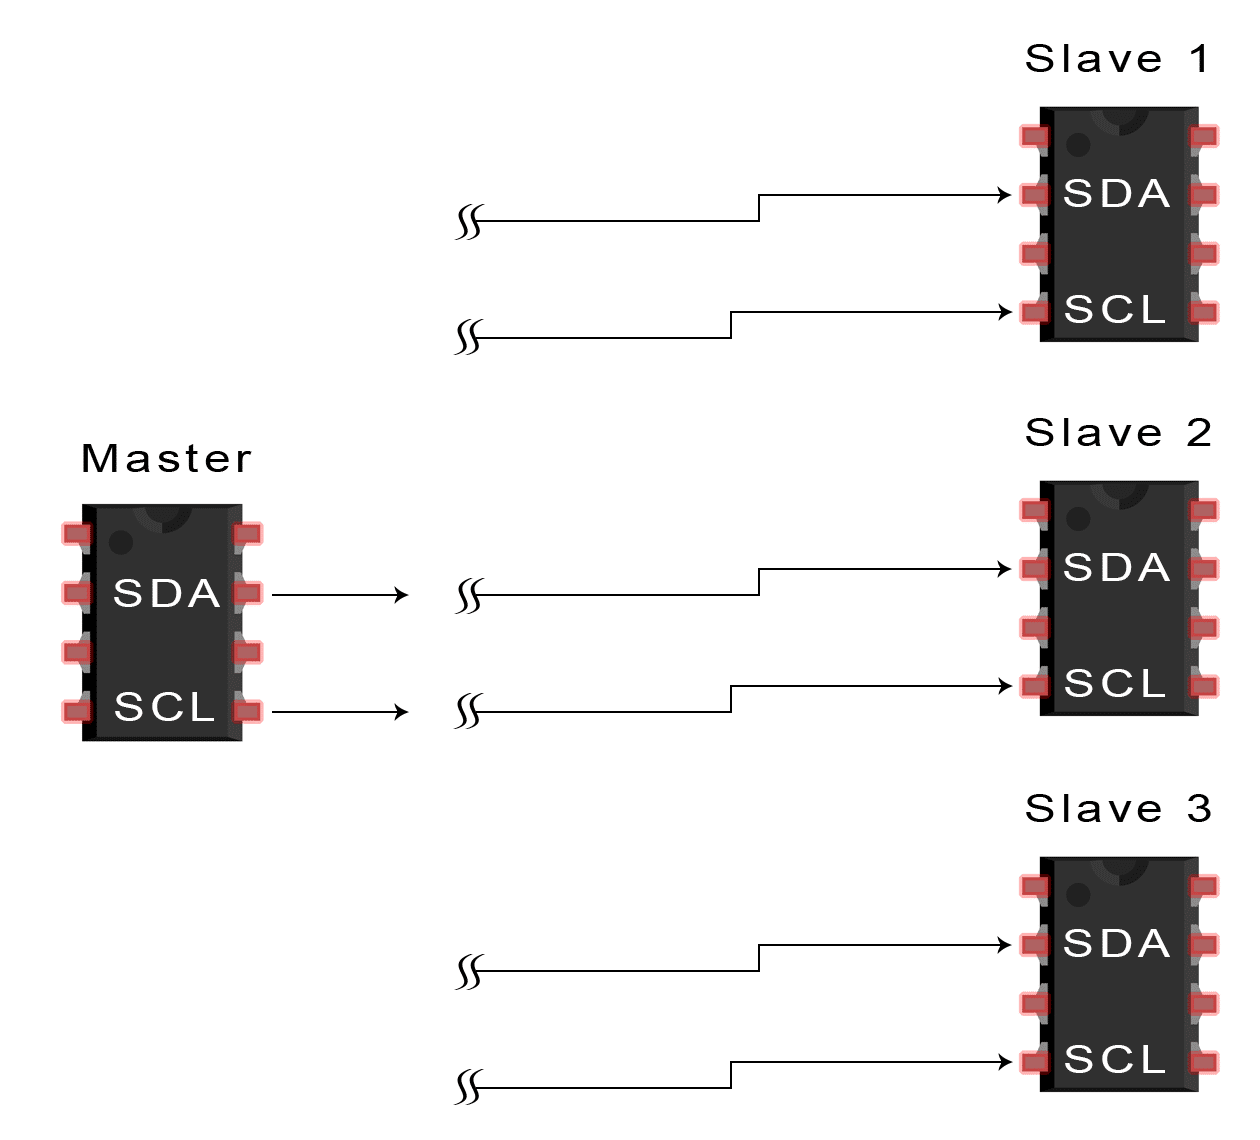 Basics Of The I2c Communication Protocol Integrated Circuit Wikipedia Photos And Videos Master Sends Start Condition To Every Connected Slave By Switching Sda Line From A High Voltage Level Low Before